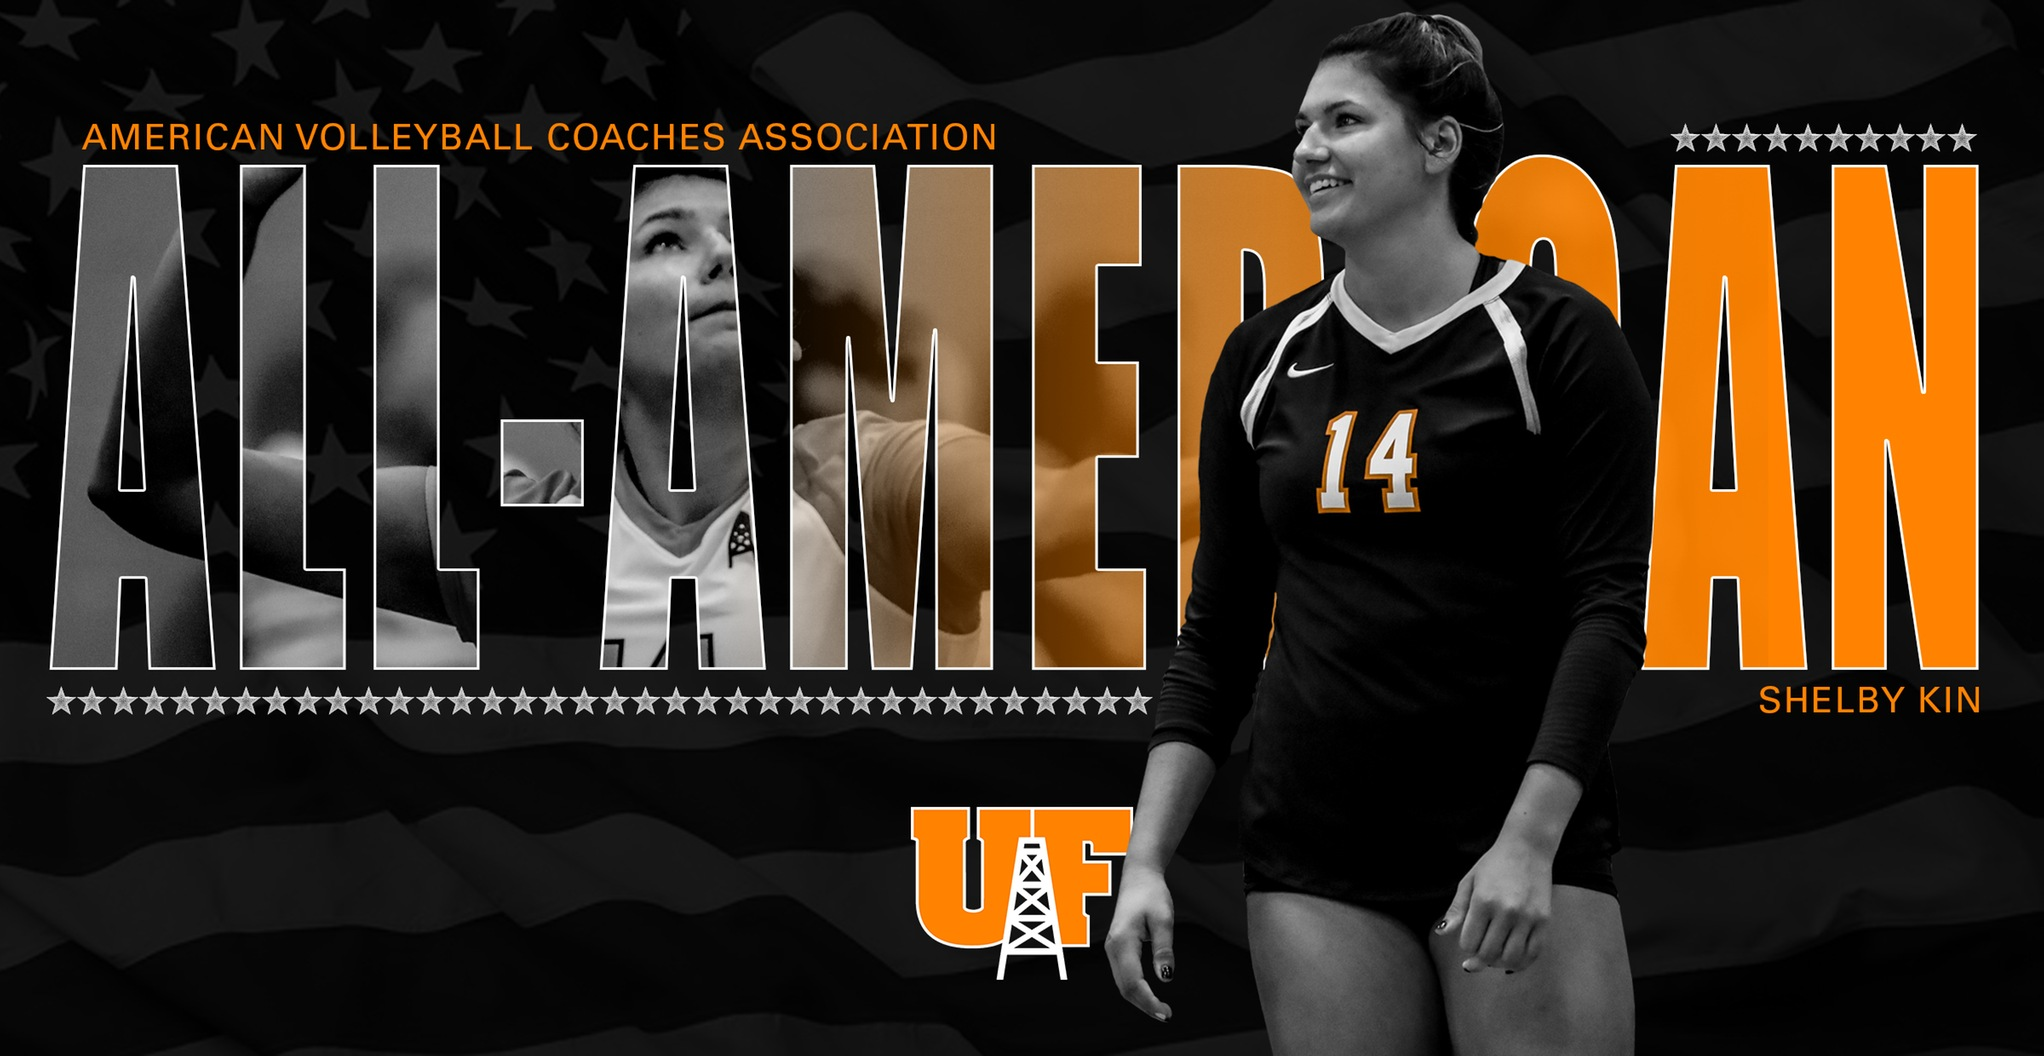 Kin Earns All-American Honors from AVCA